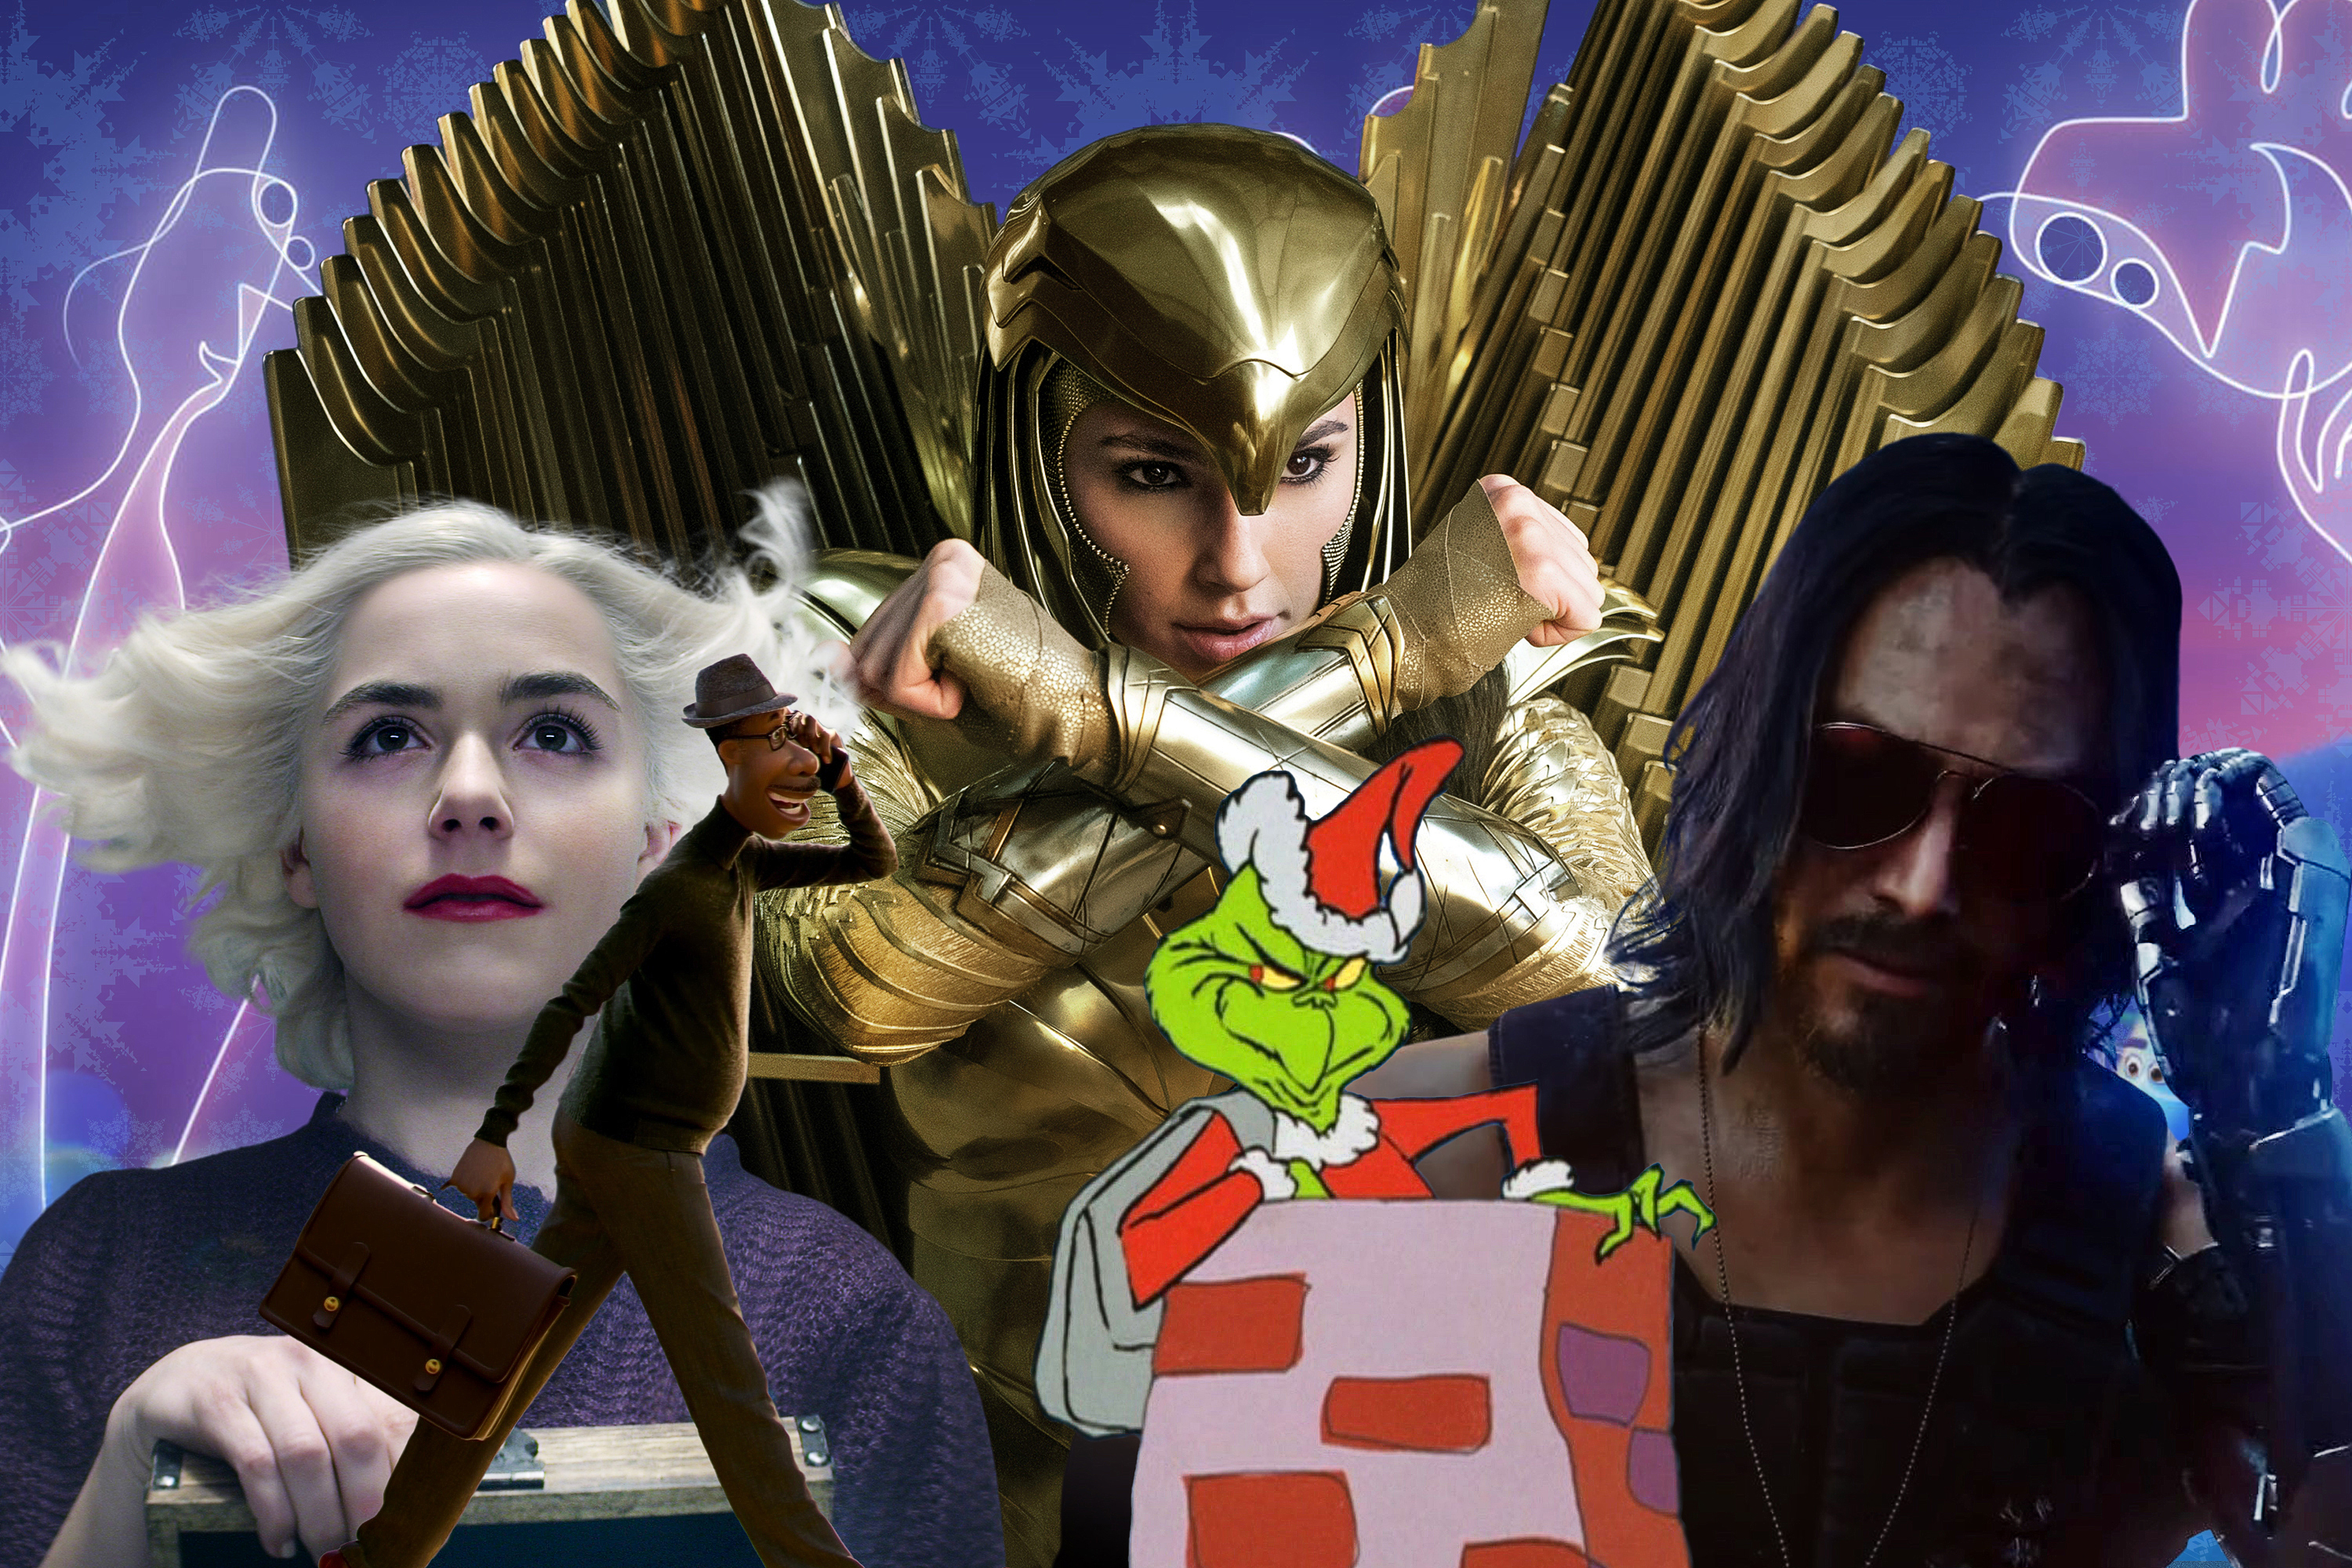 Graphic collage of characters from upcoming games and movies airing over the holidays